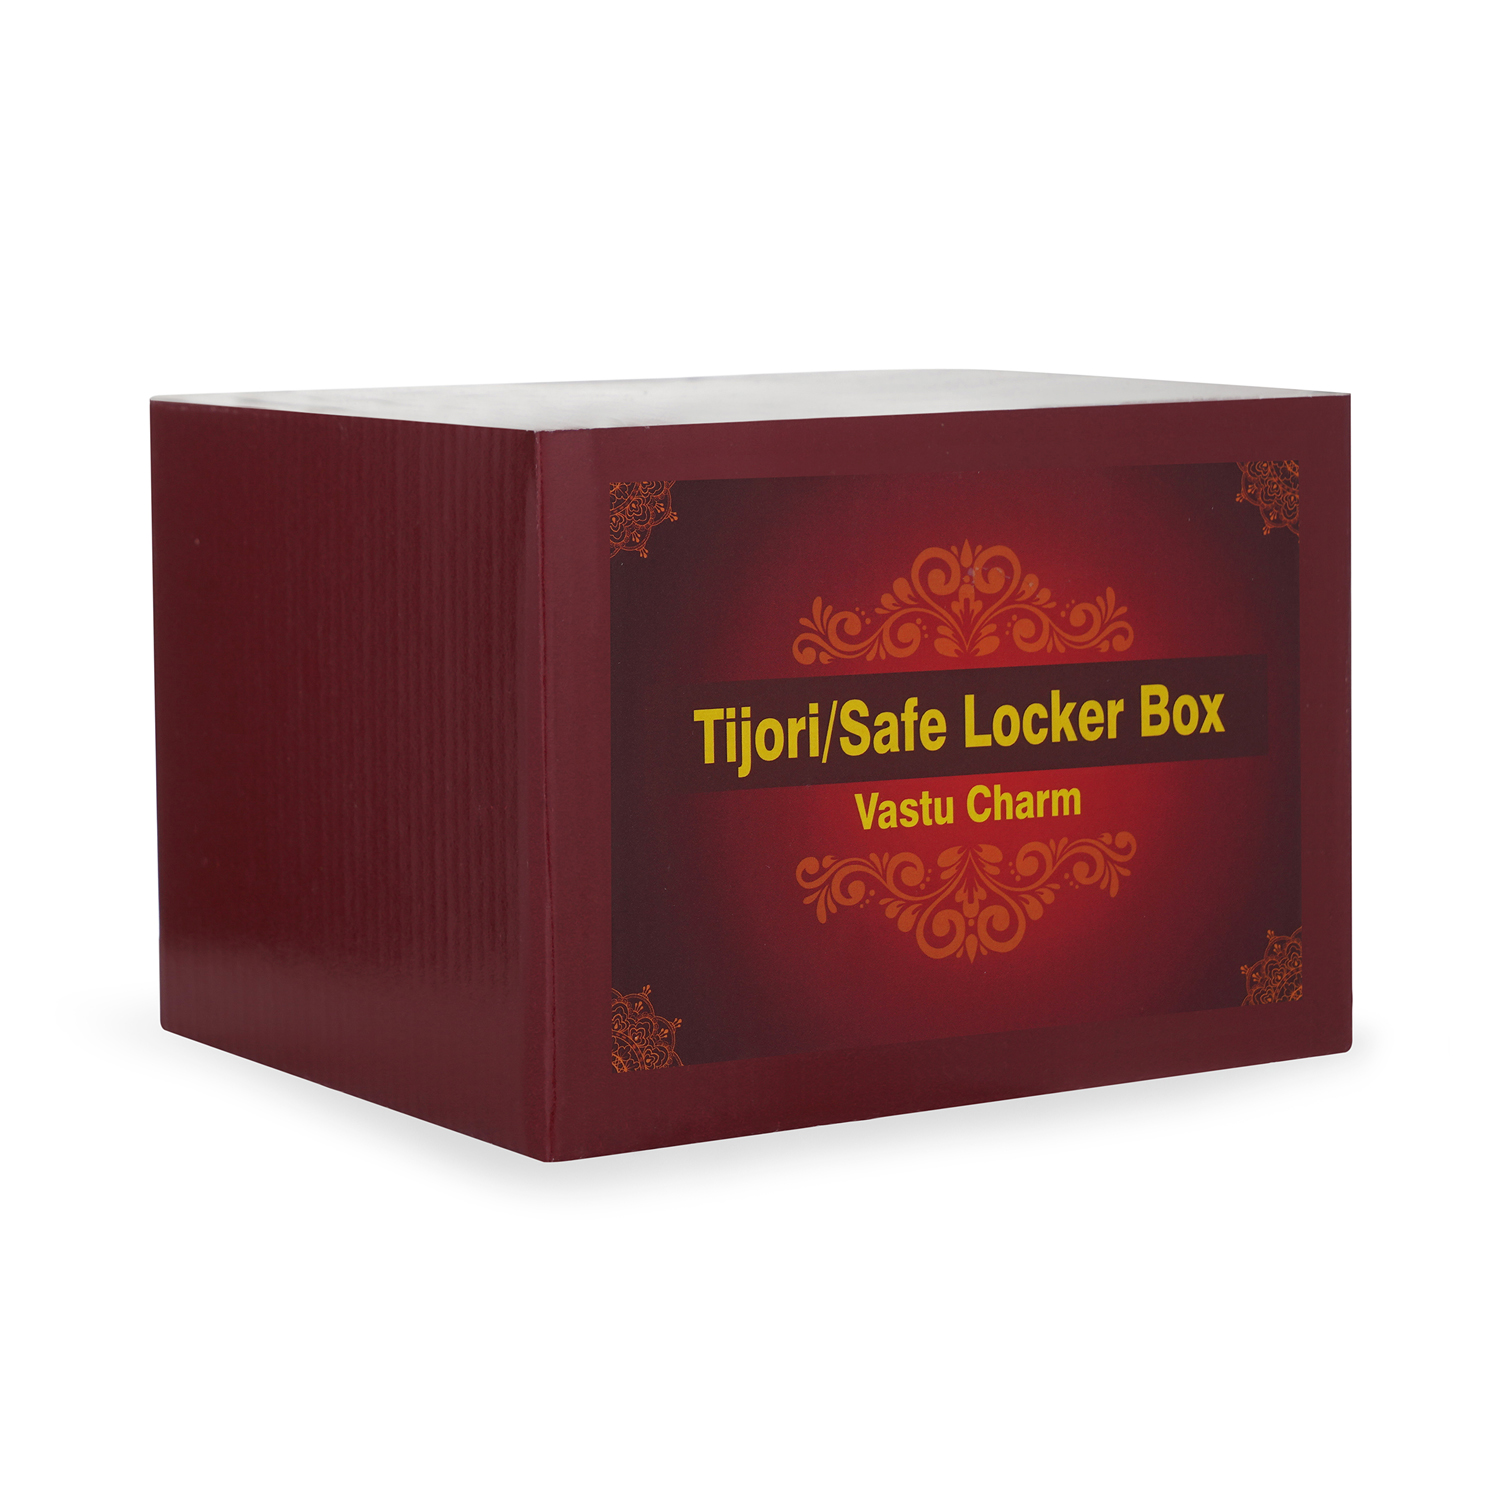 Tijori /Safe Locker Box